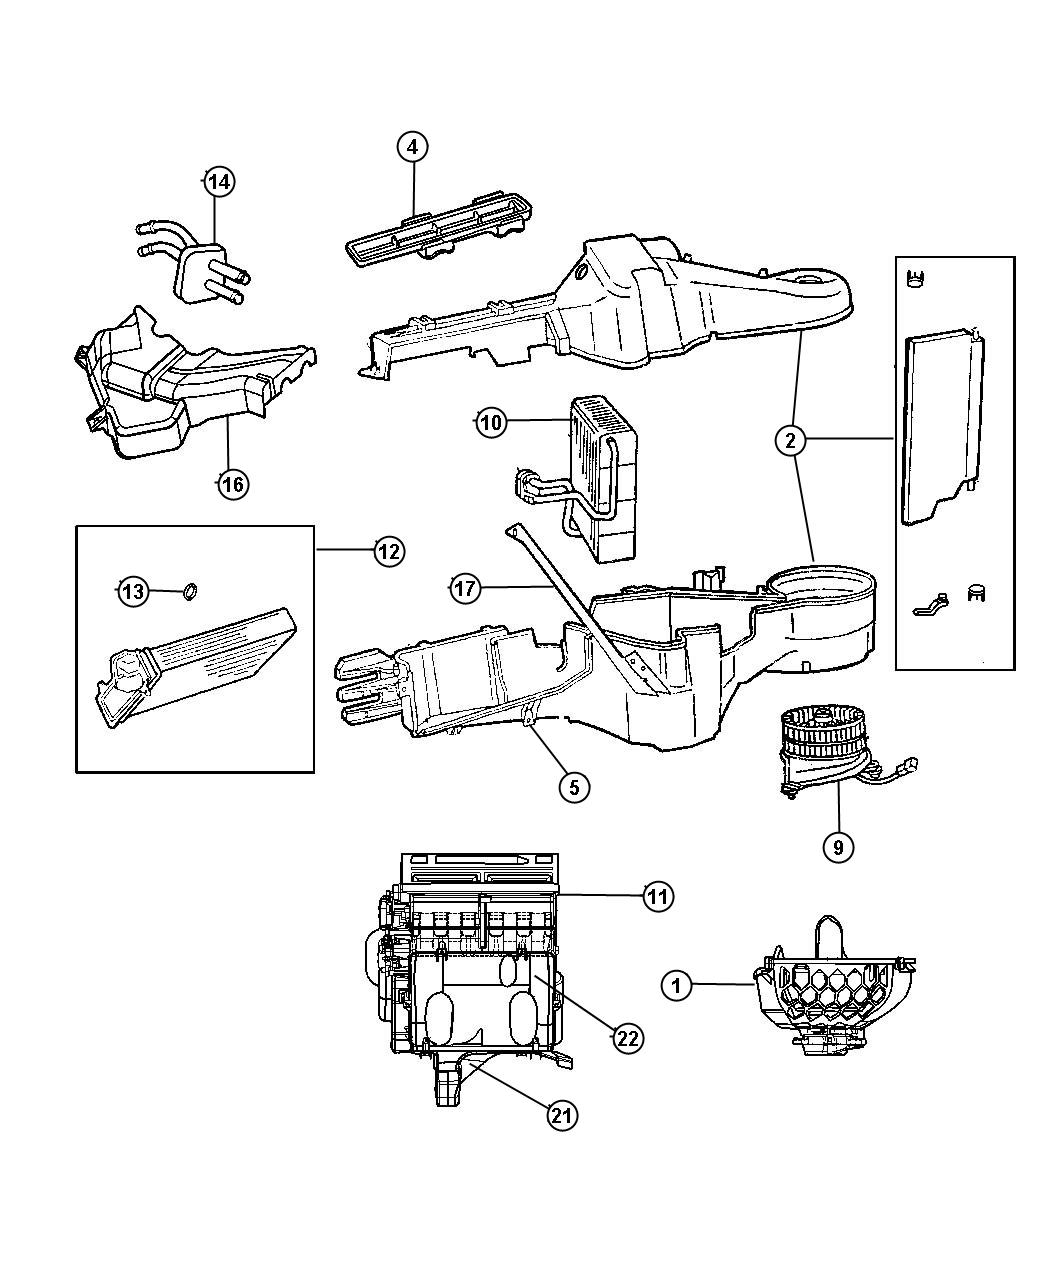 Jeep Compass Seal Kit Used For A C And Heater Unit Air